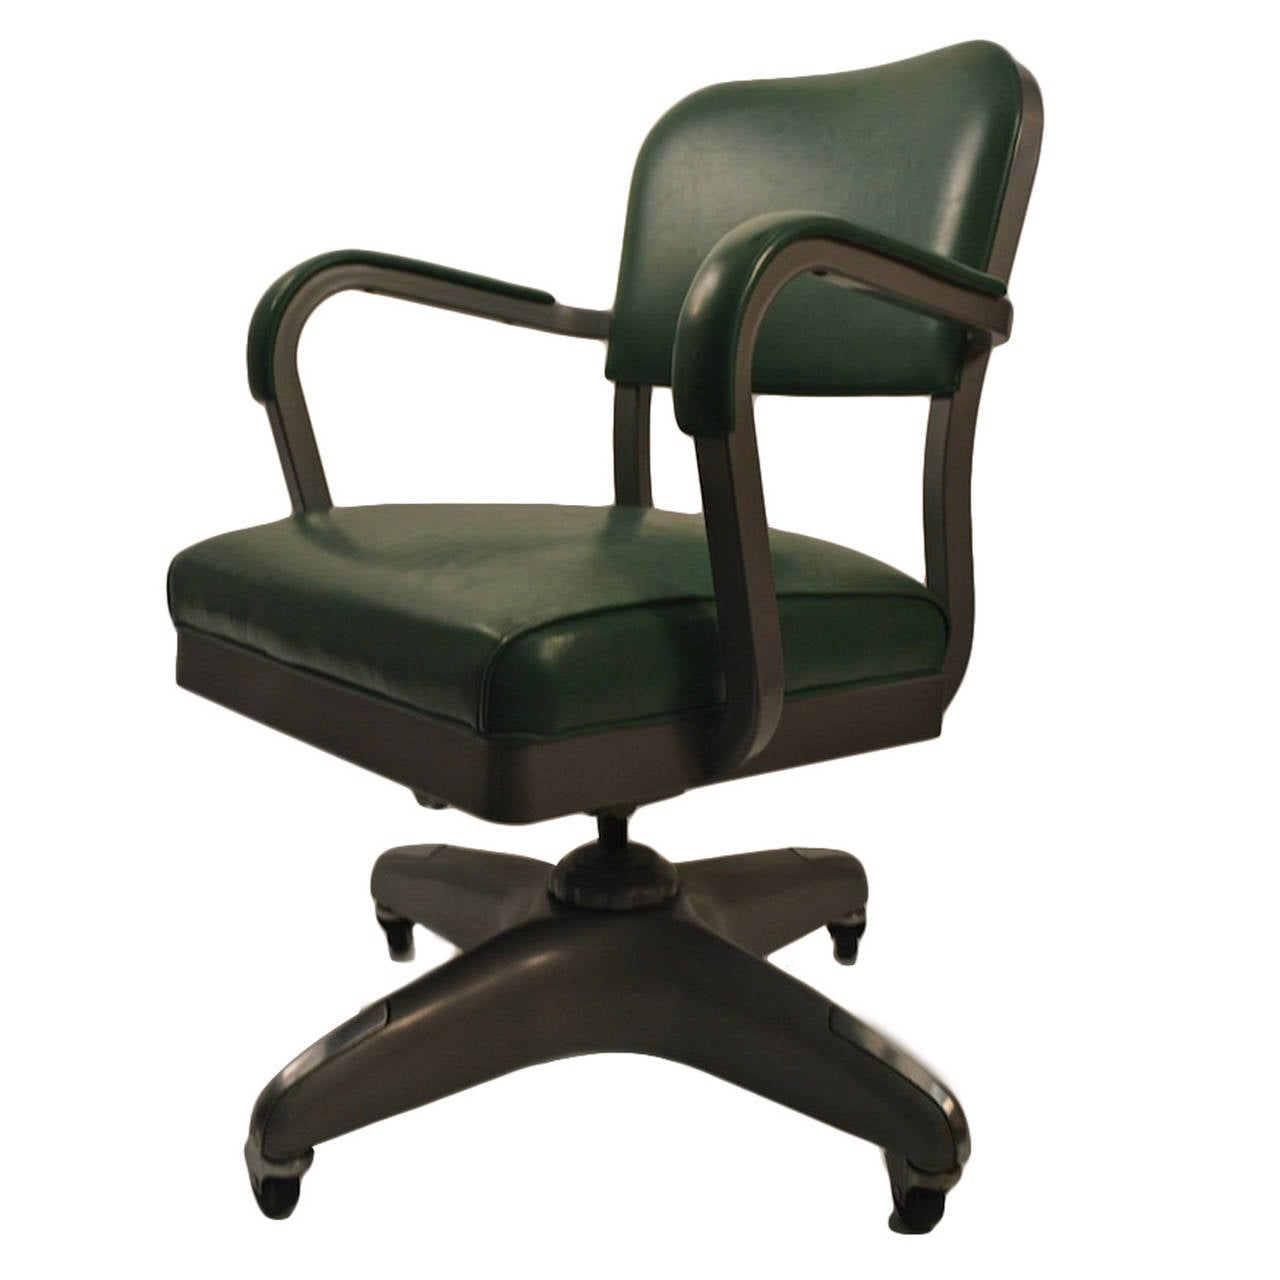 Classic swivel tilt industrial office chair at 1stdibs for Swivel chairs for office